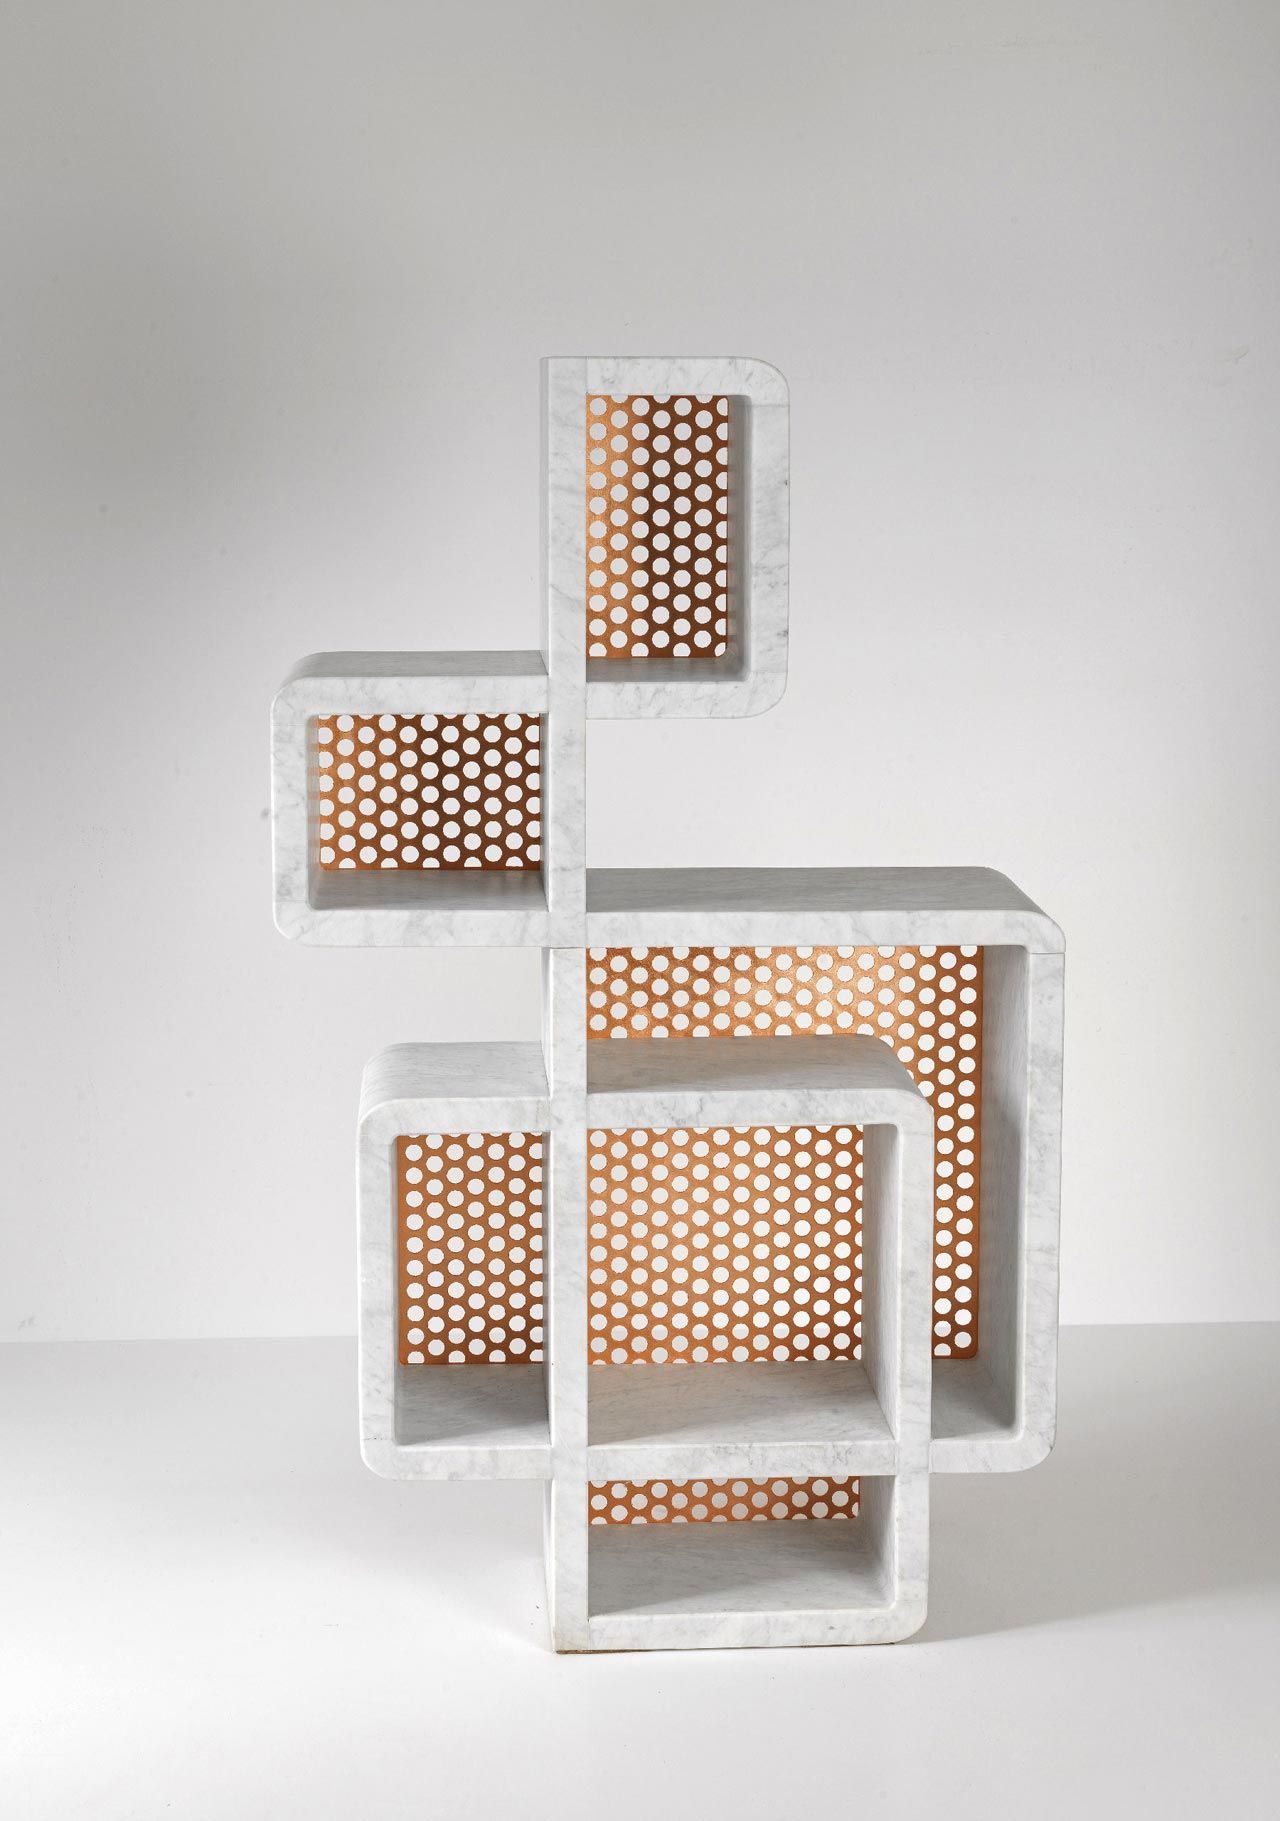 Marble And Metal Shelves Inspired By Doodling | Home Furnishings